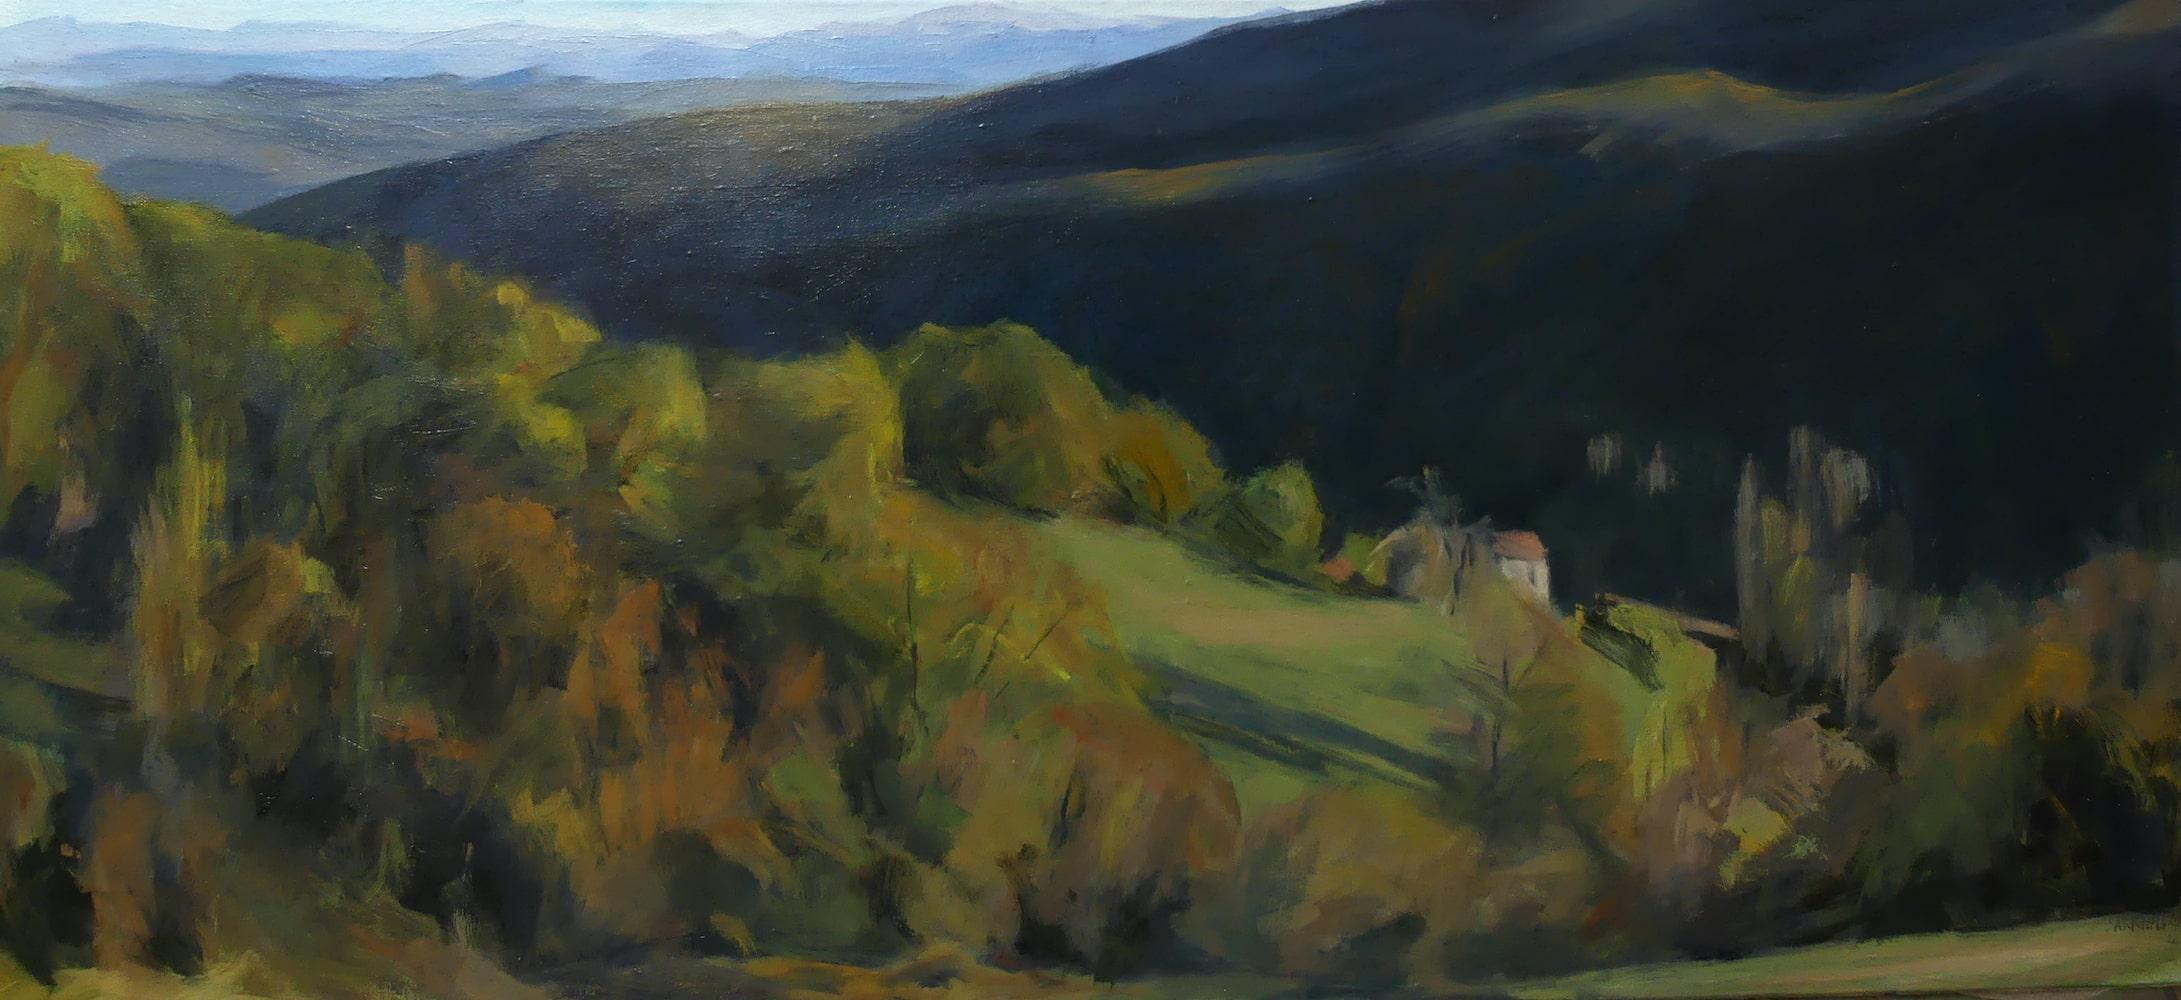 Woods of Auzas - contemporary landscape painting, Occitanie, Southern France